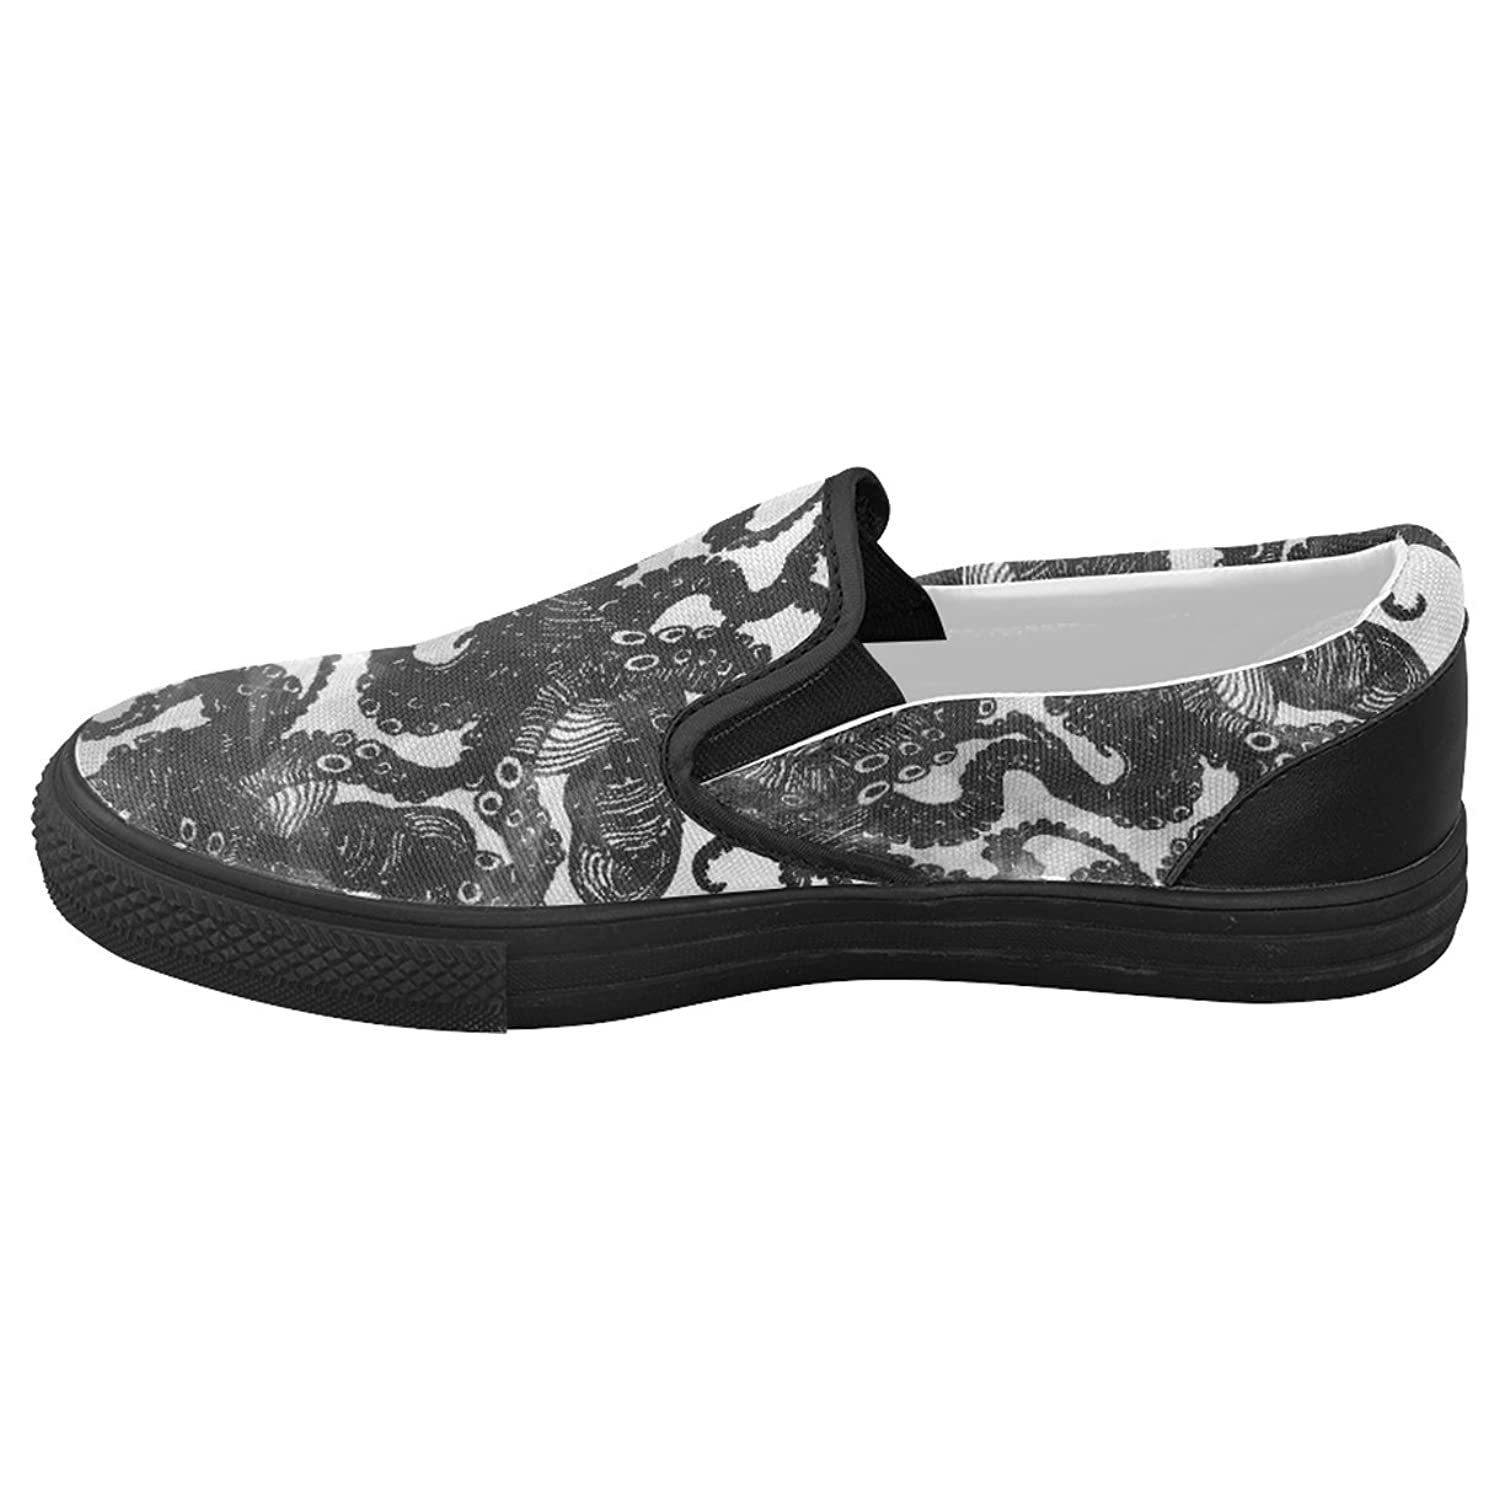 CASECOCO Abstract Octopus Black Canvas Women's Slip On Shoes Fashion Sneakers